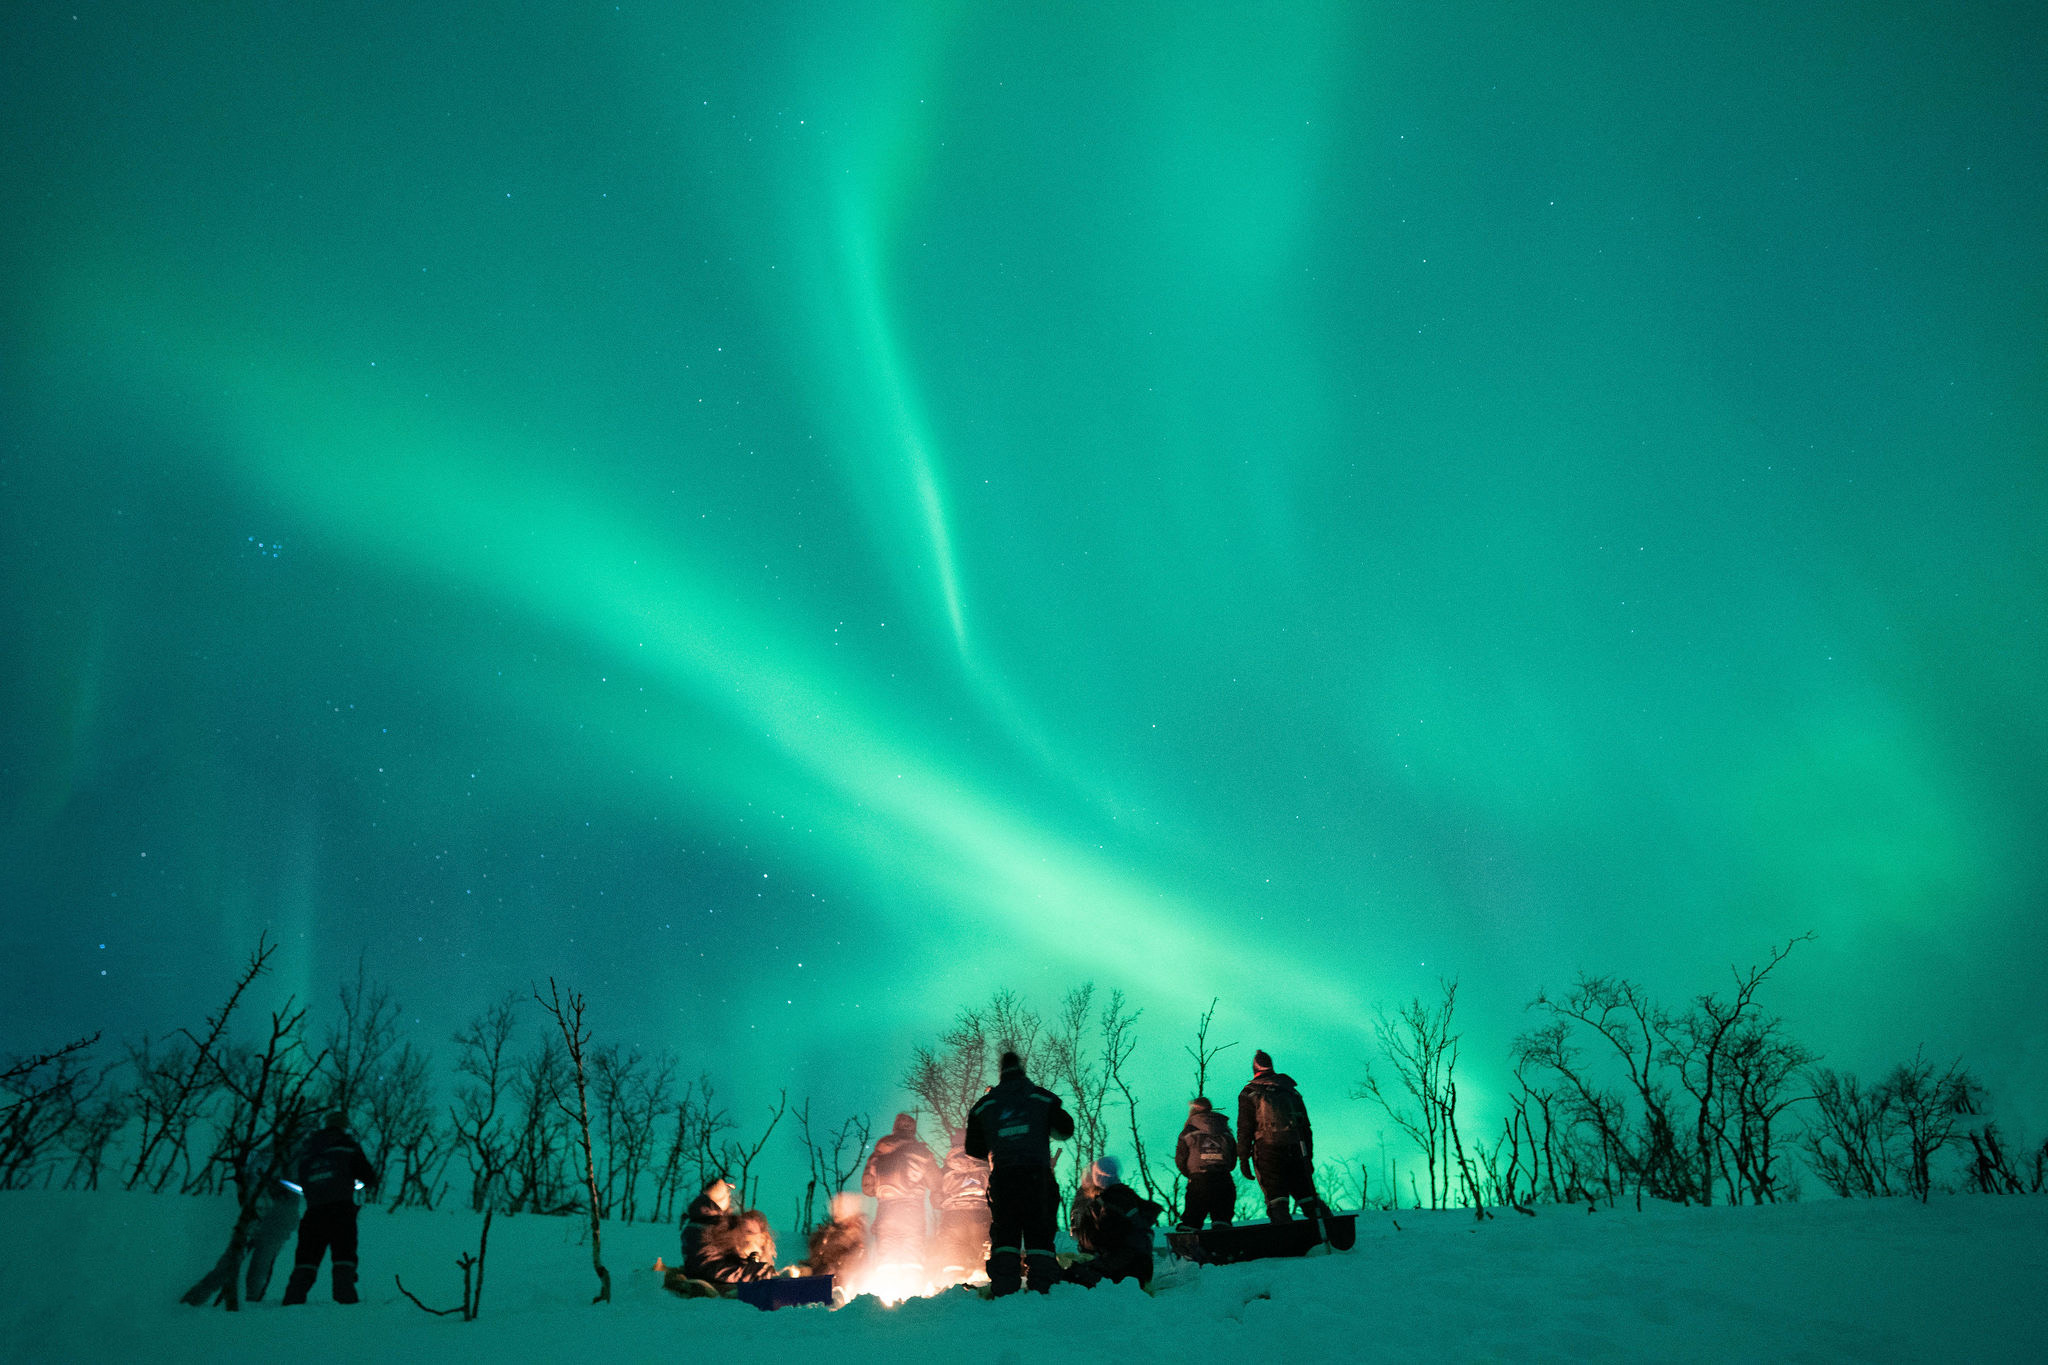 Campfire with northern lights